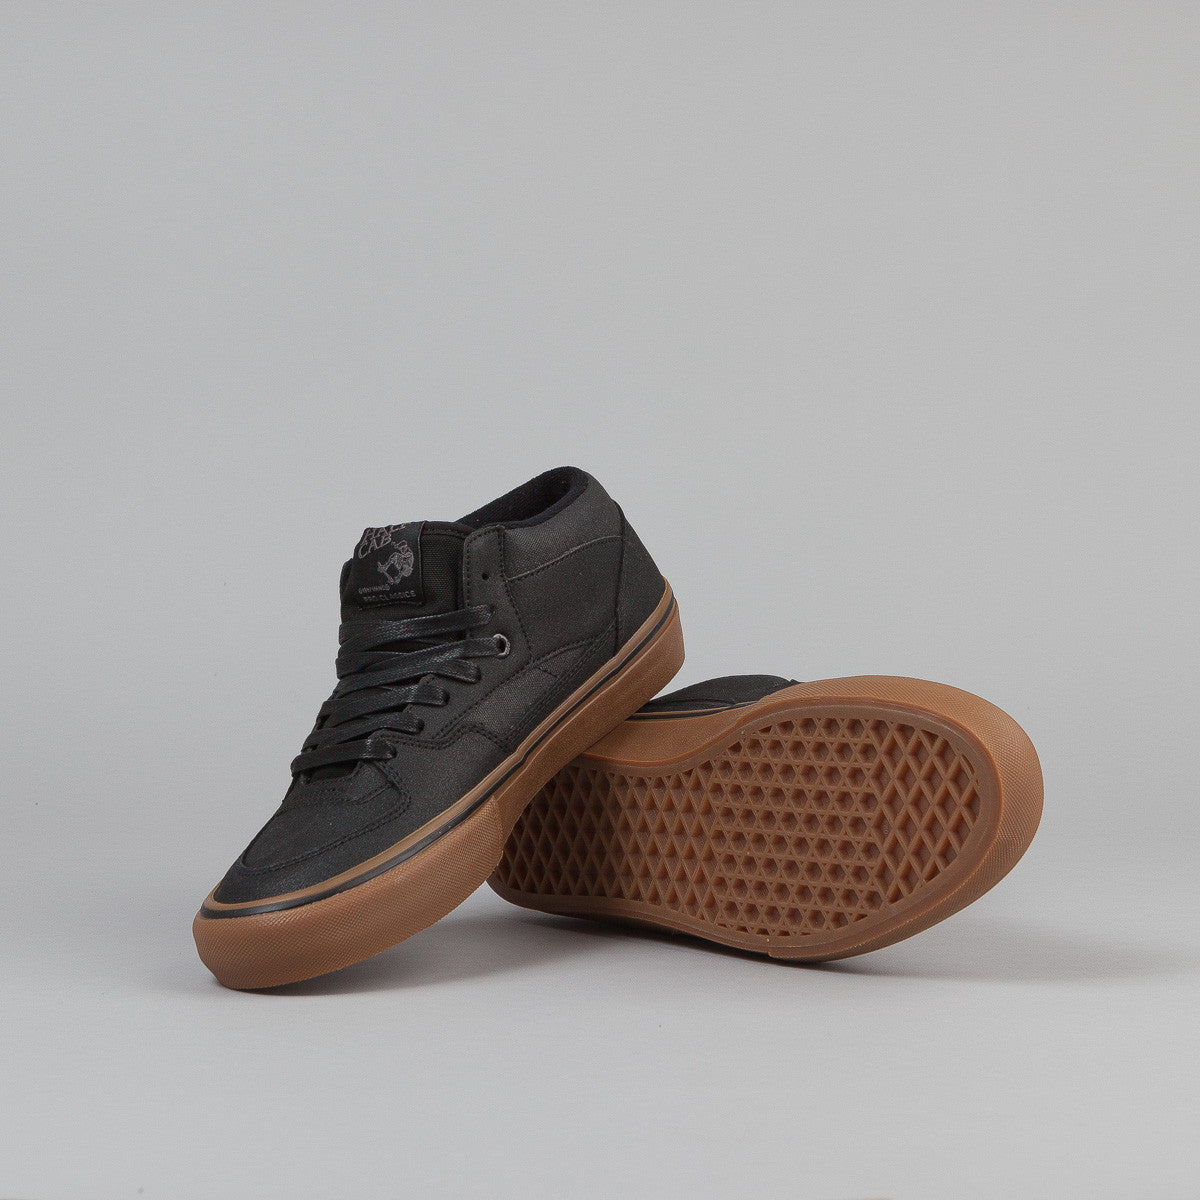 Vans Half Cab Pro Shoes - (Xtuff) Black / Gum